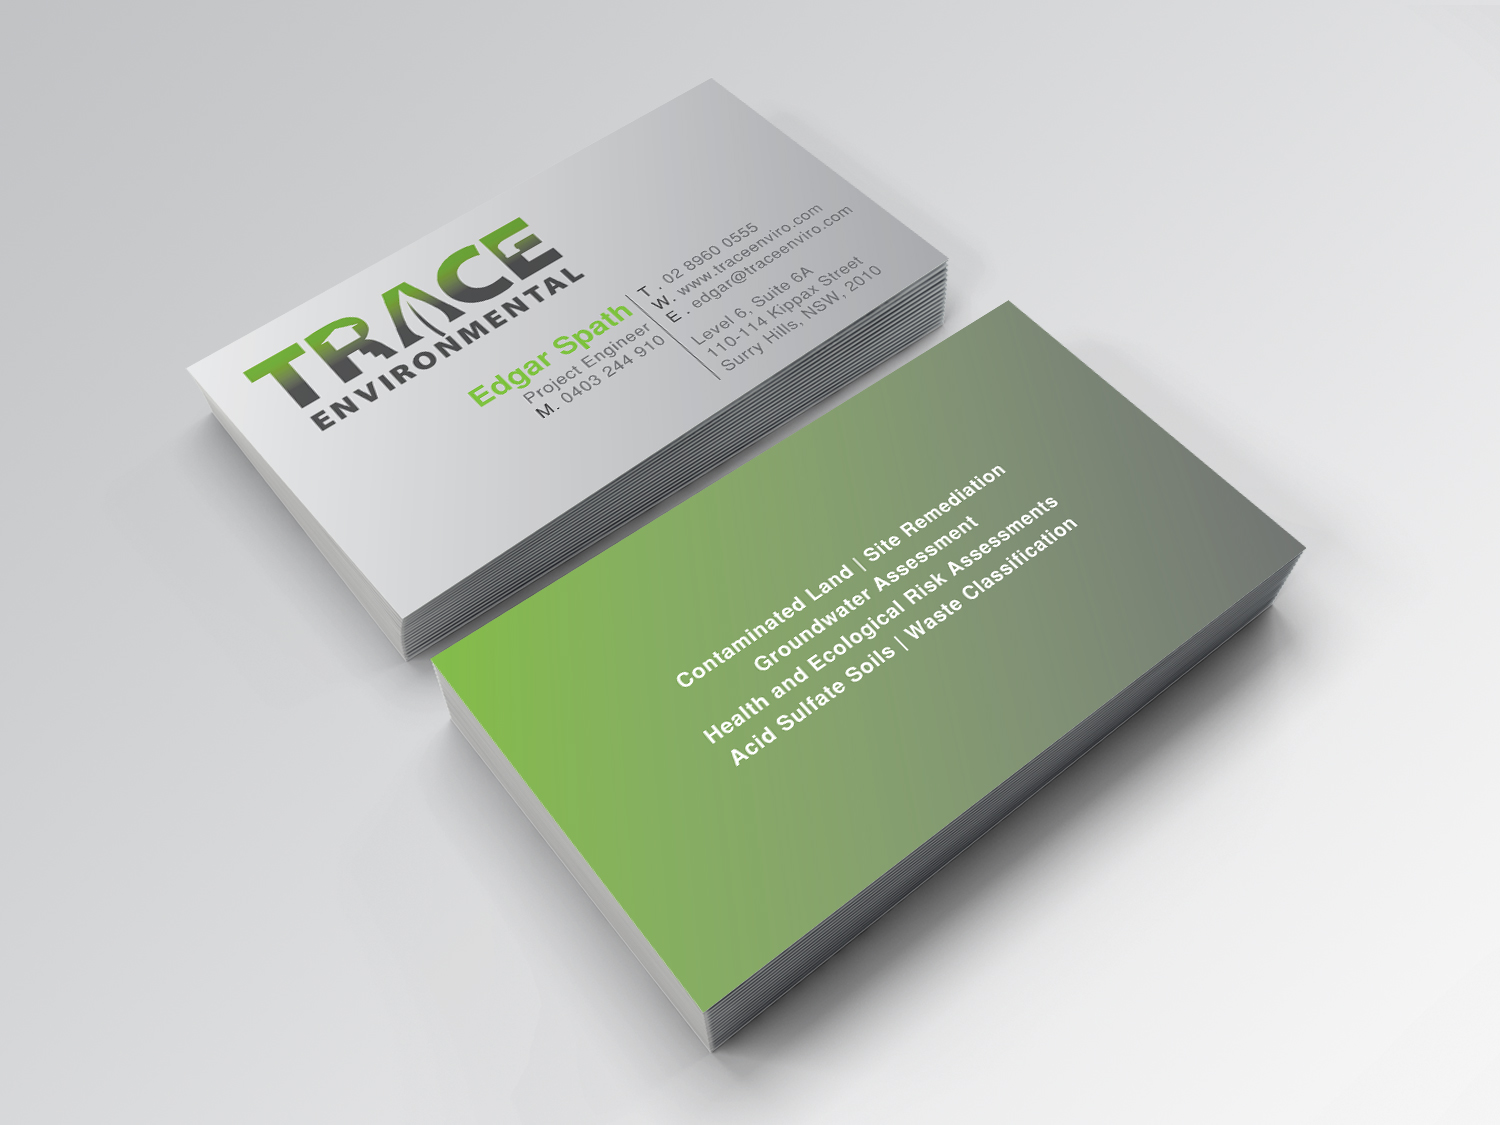 Modern professional business business card design for trace business card design by tanmoyamanik for trace environmental design 12697272 colourmoves Images